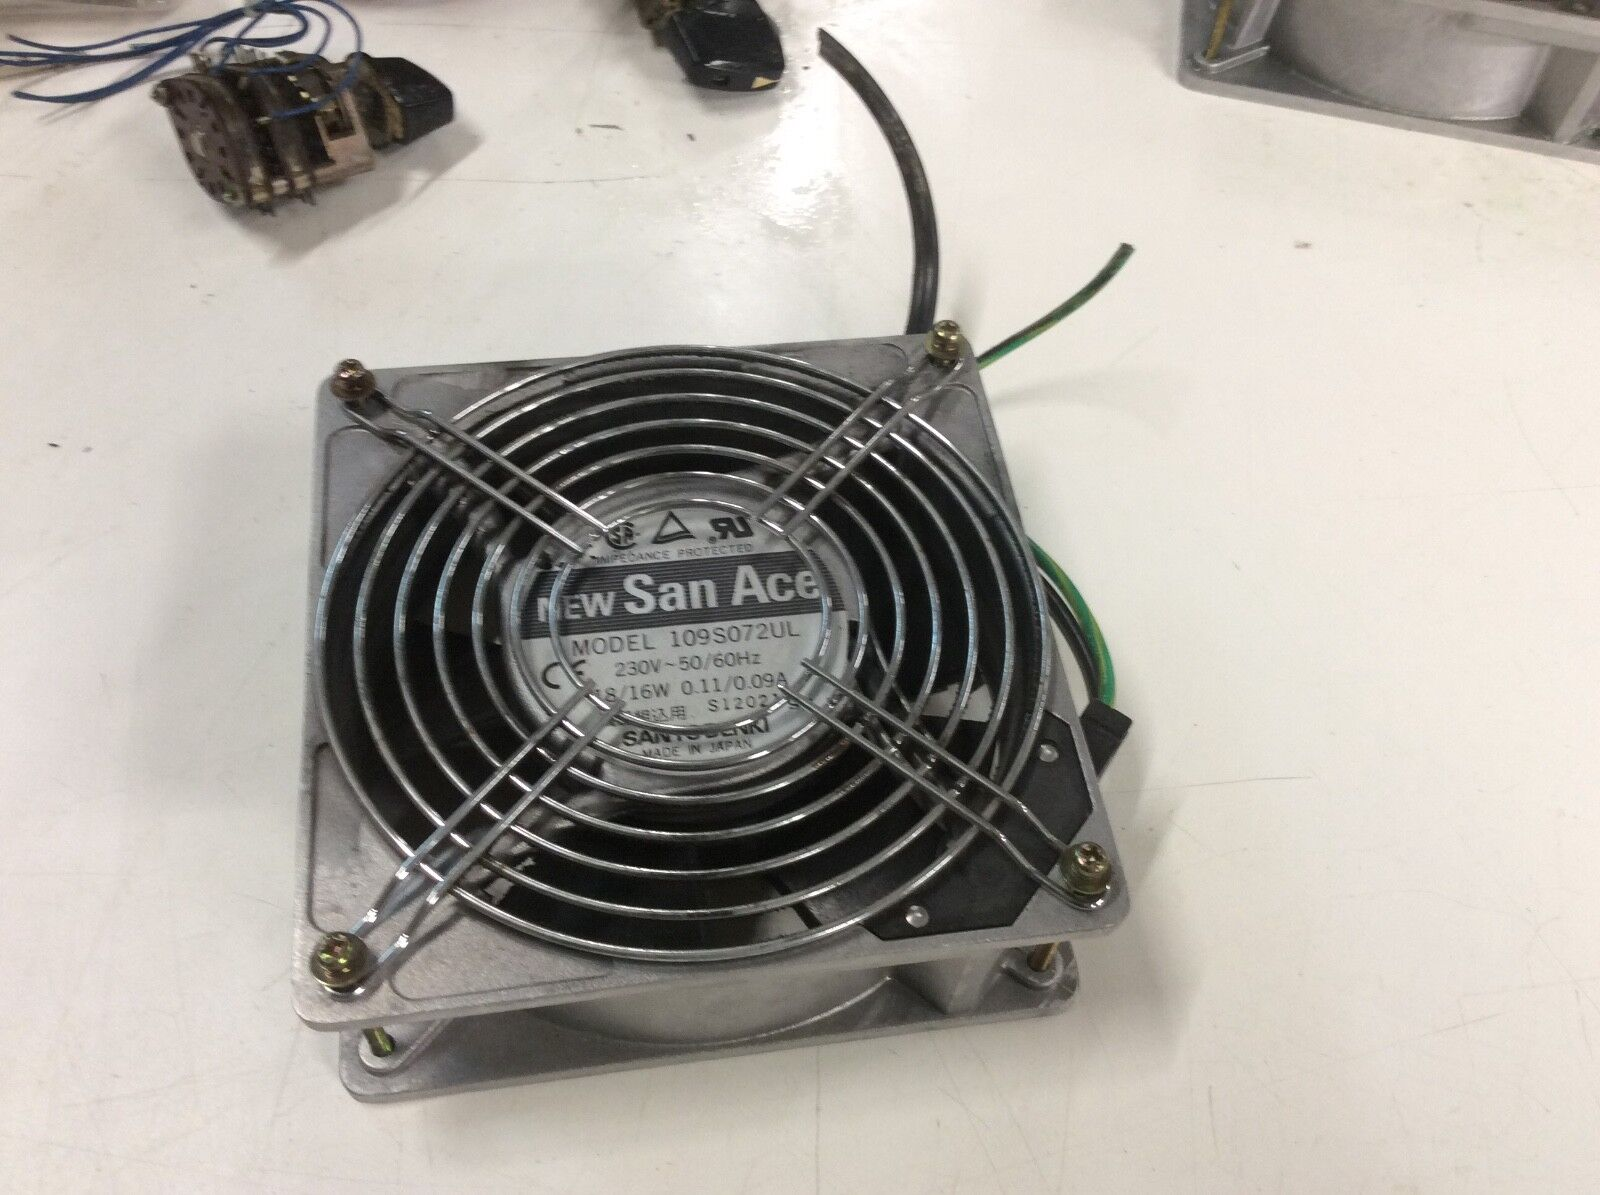 Sanyo Denki San Ace Electrical Fan, 109S072UL, 230V, Used, WARRANTY